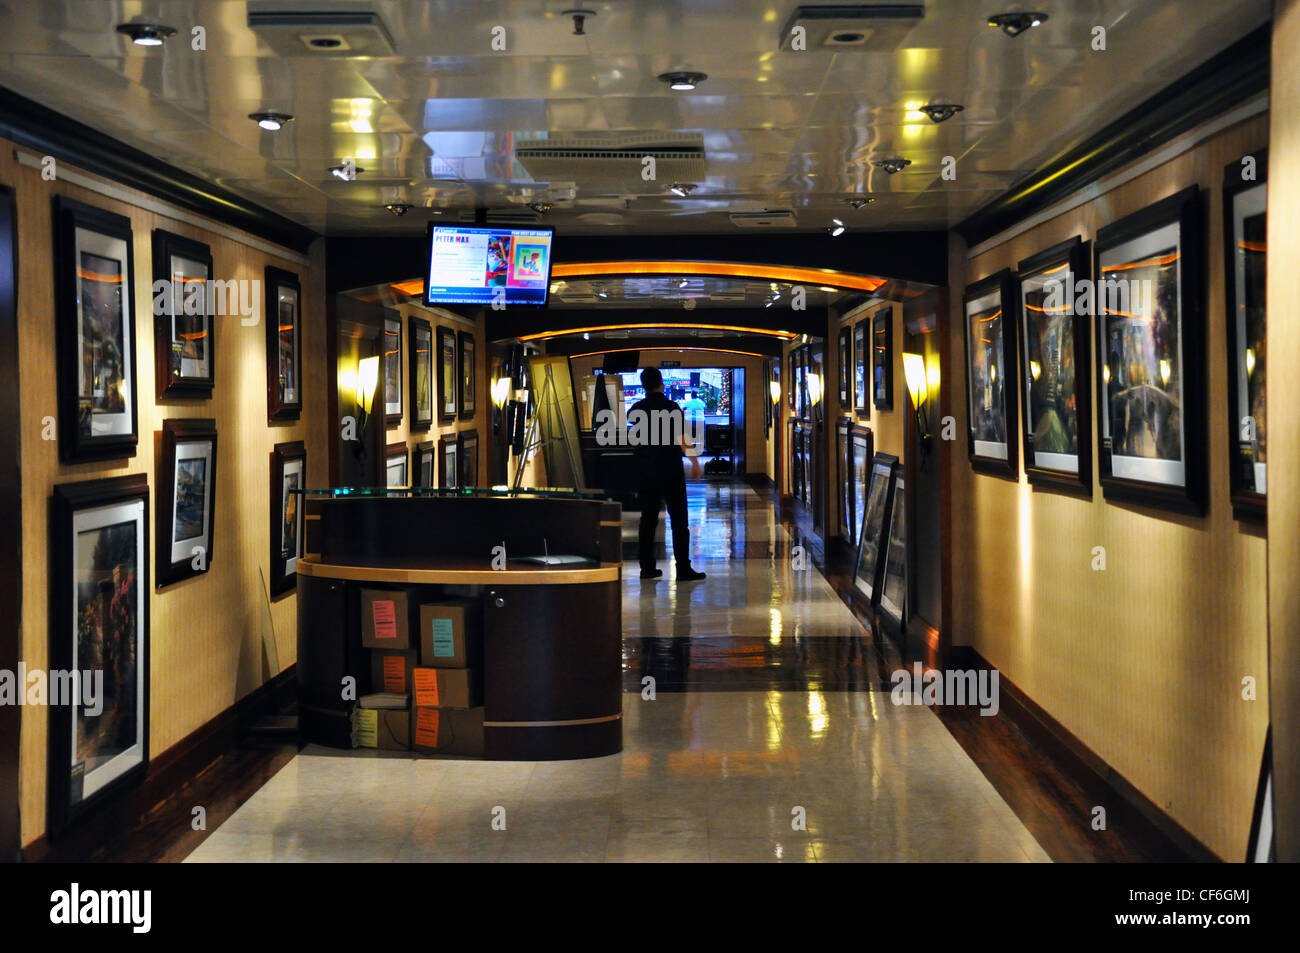 Cruise Ship Art Gallery Stock Photo Royalty Free Image